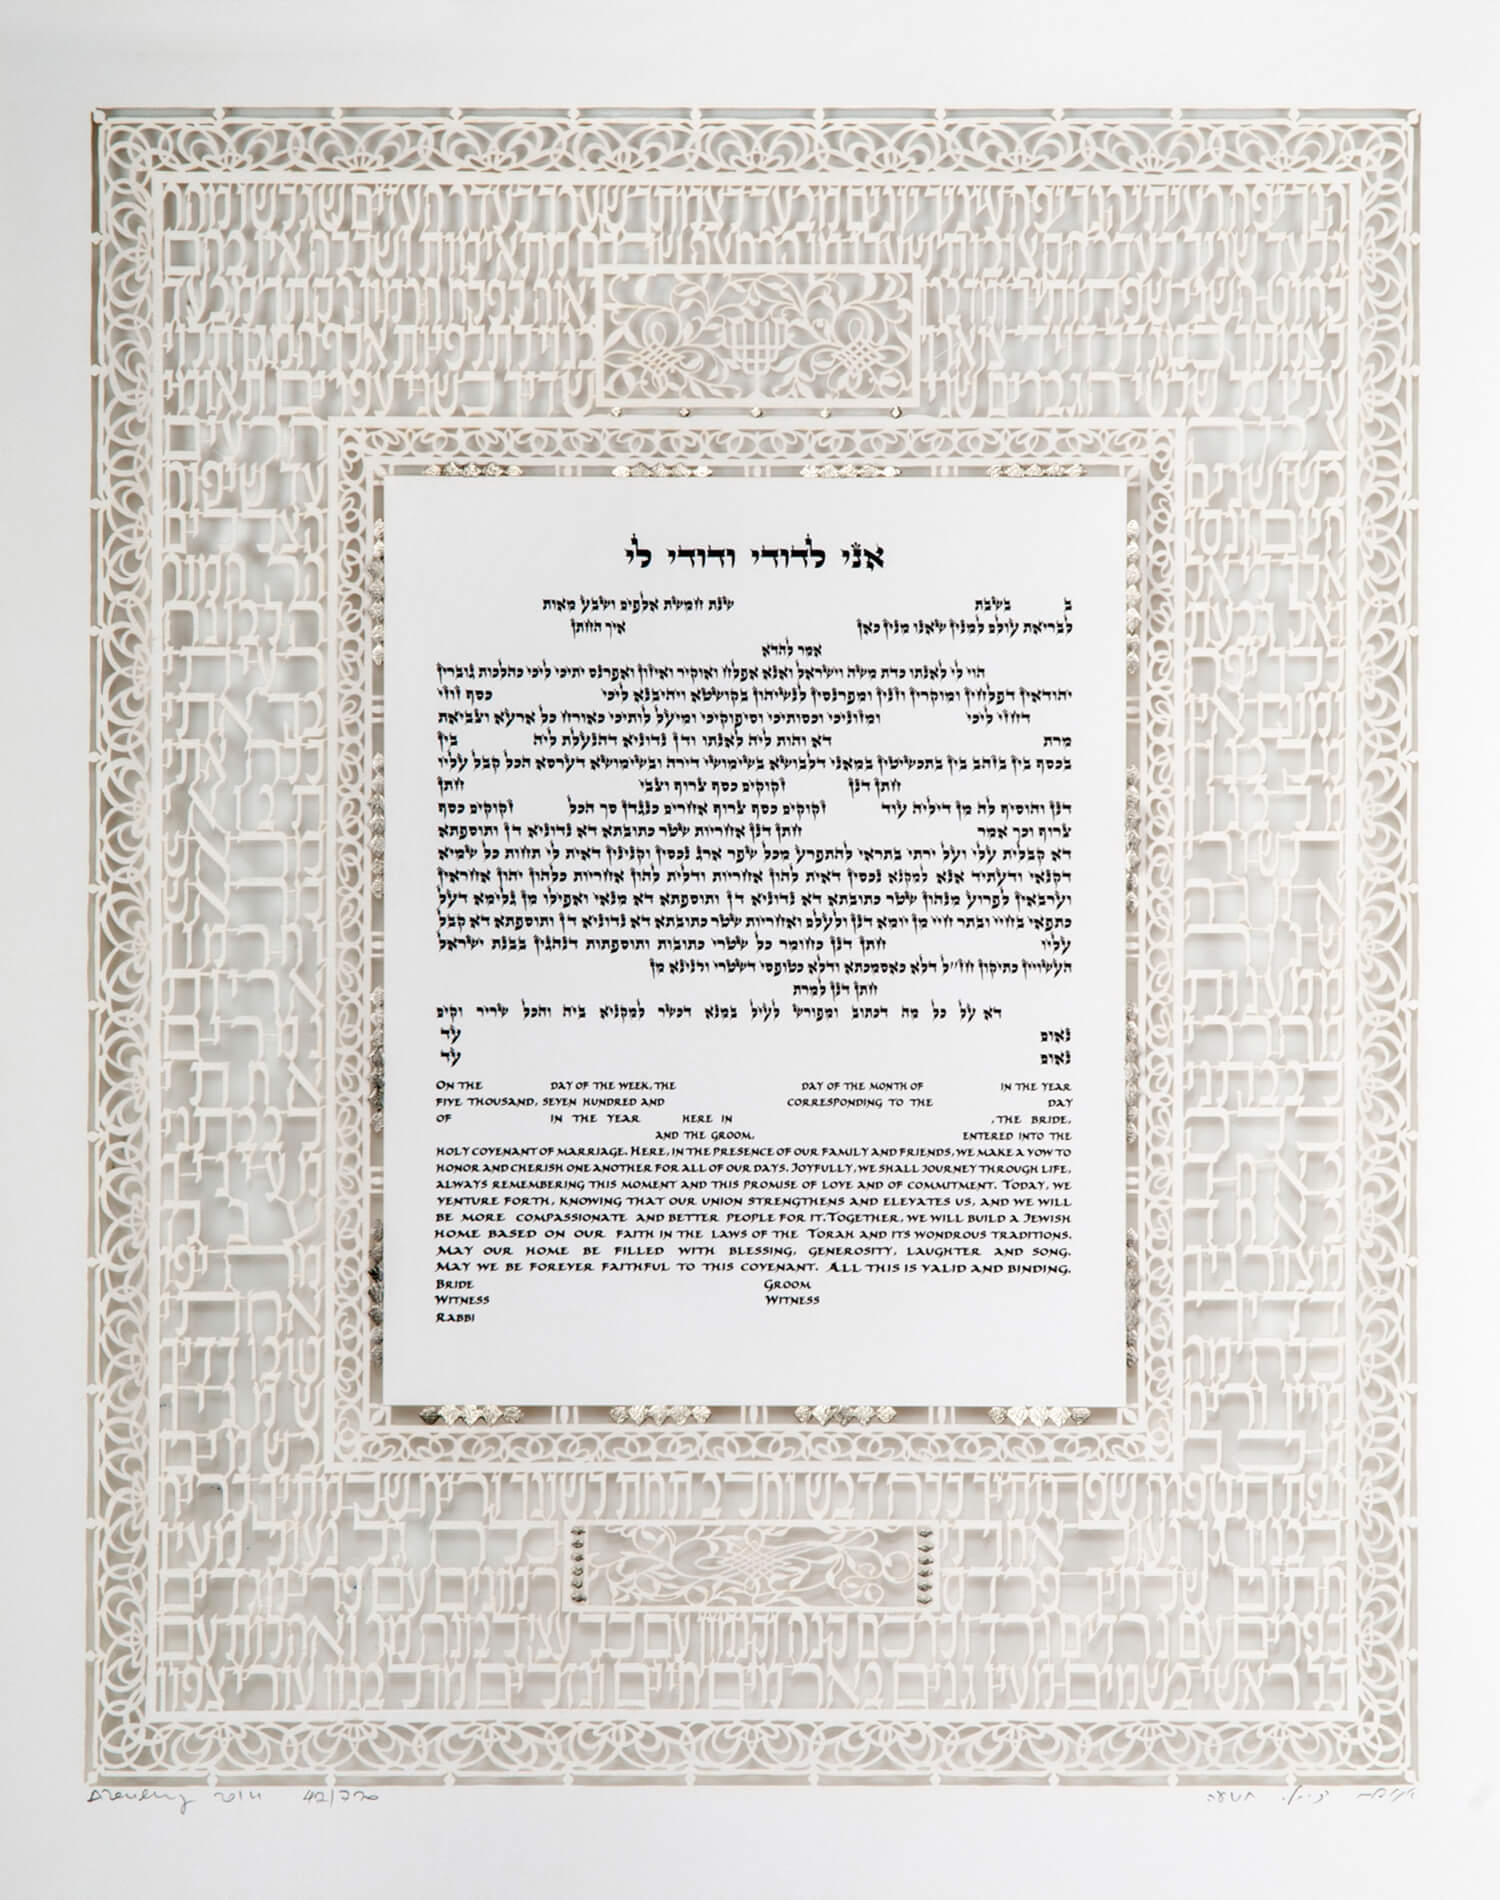 This a full size image of a NYC ketubah for jewish wedding ceremonies